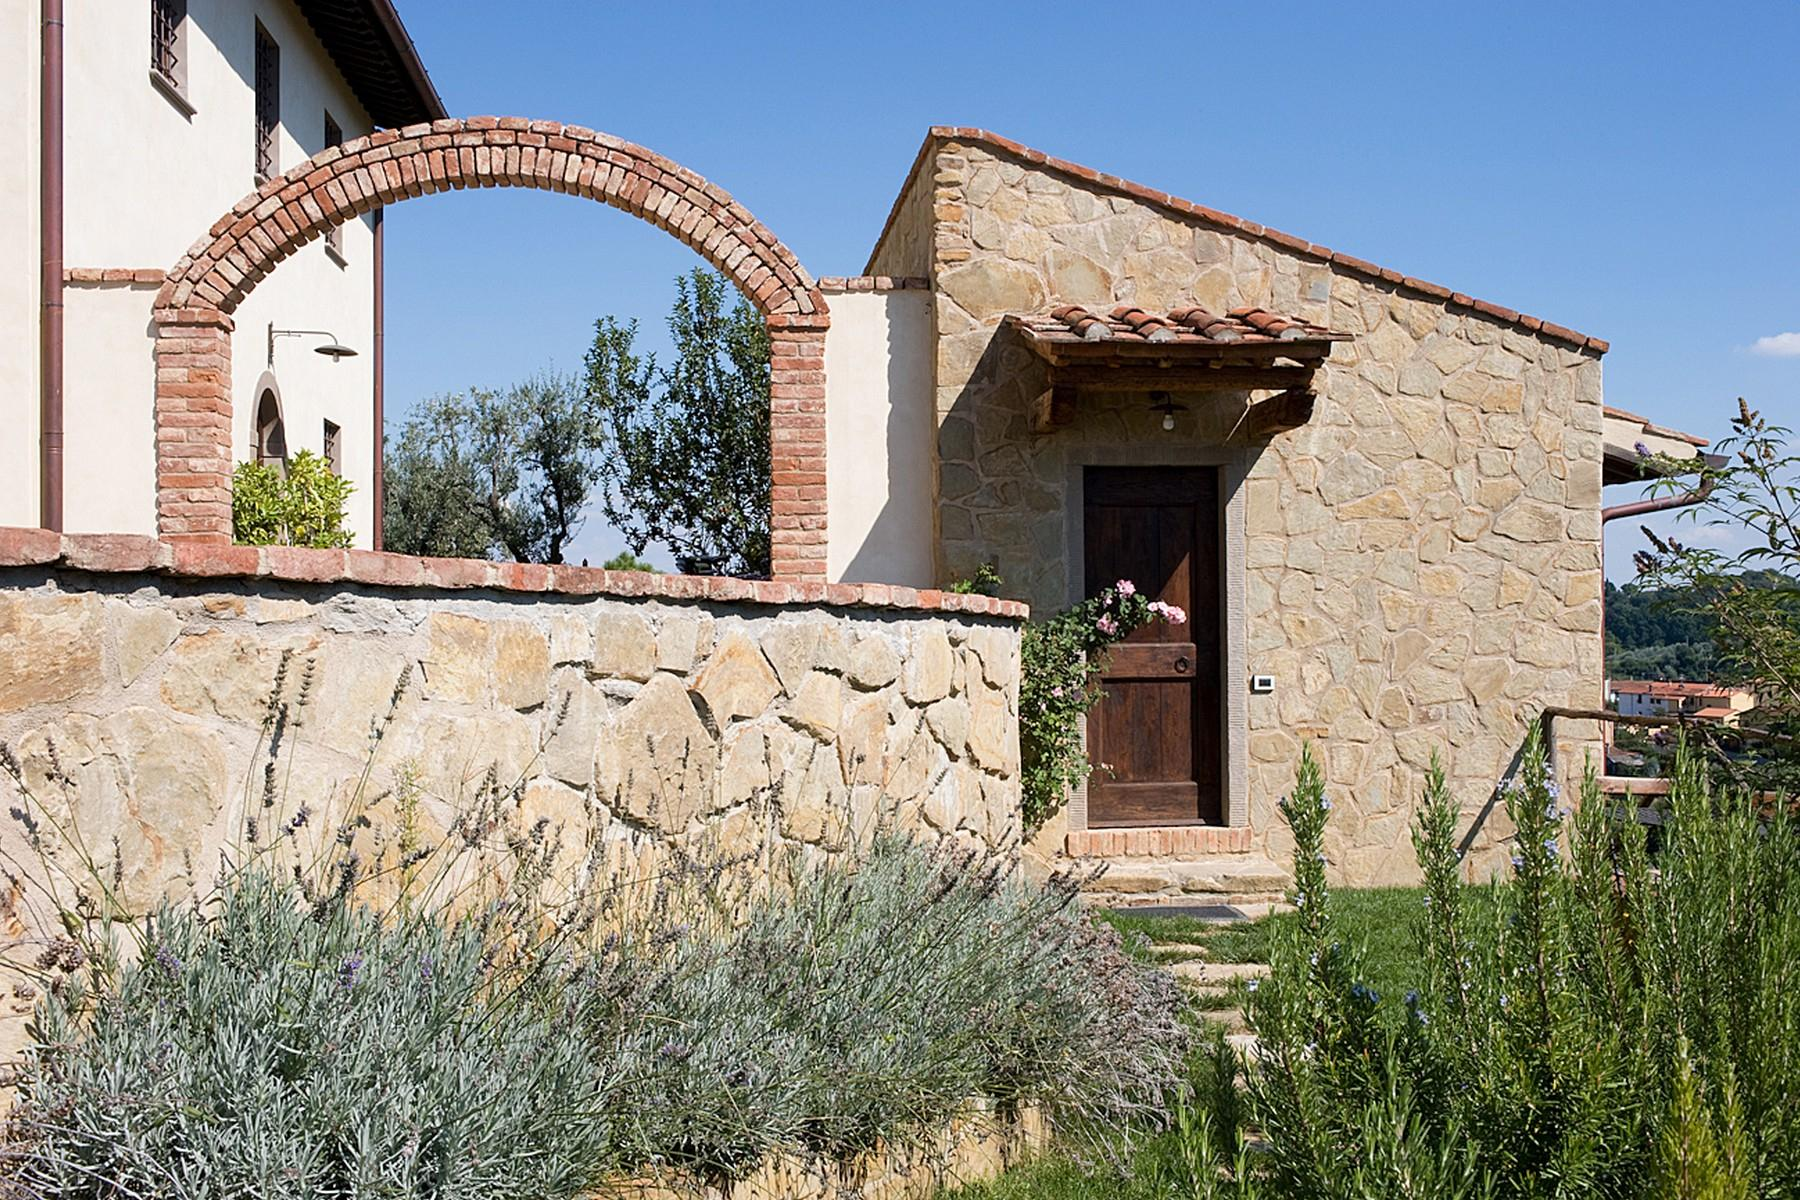 Farmhouse for sale in the Tuscan hills - 4